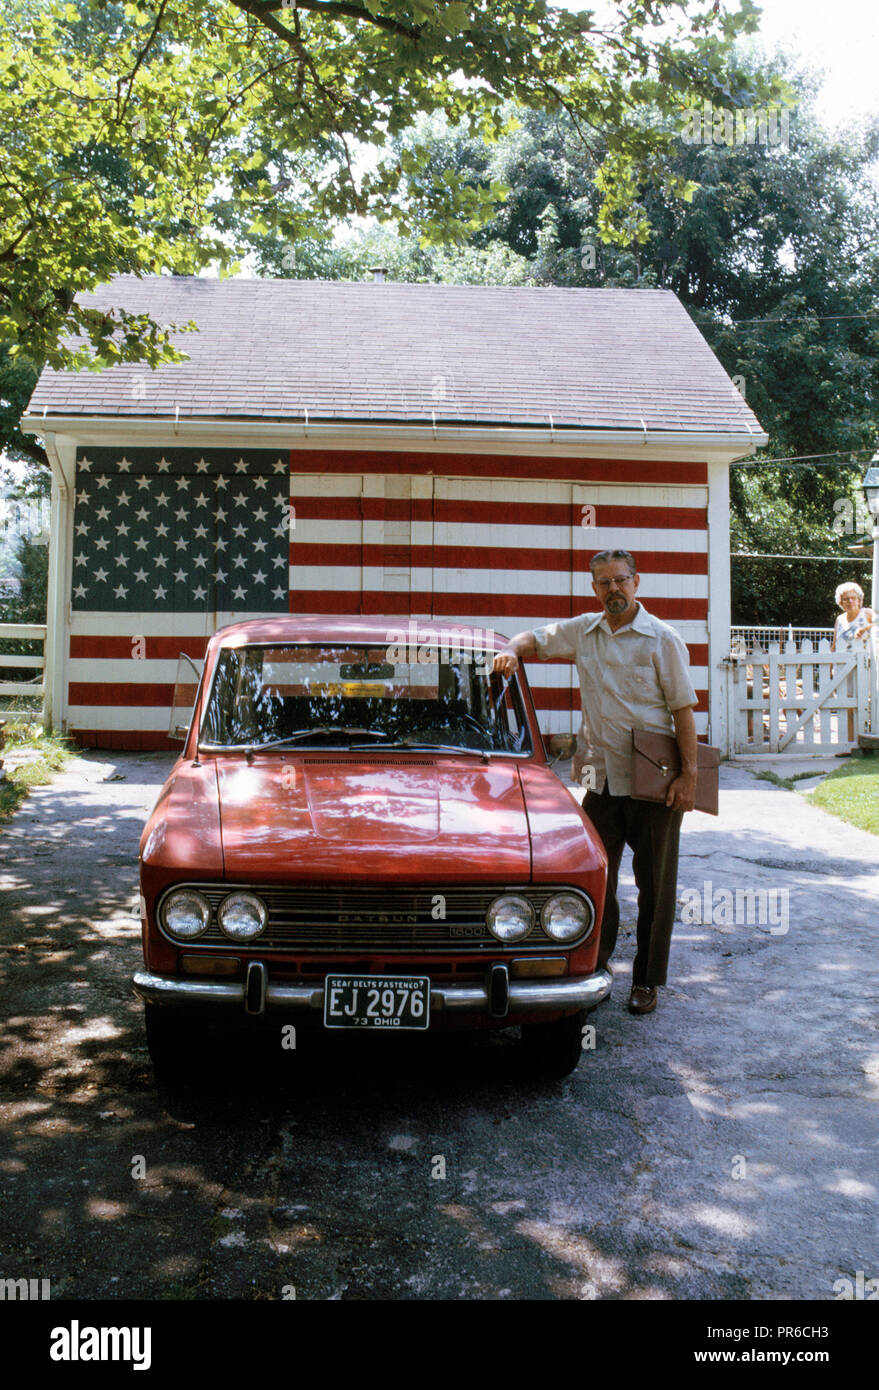 The Staley's, Residents of Suburban Lakewood, Recently Spruced Up the Doors of Their 50-Year-Old Garage with Red, White and Blue Paint - Stock Image